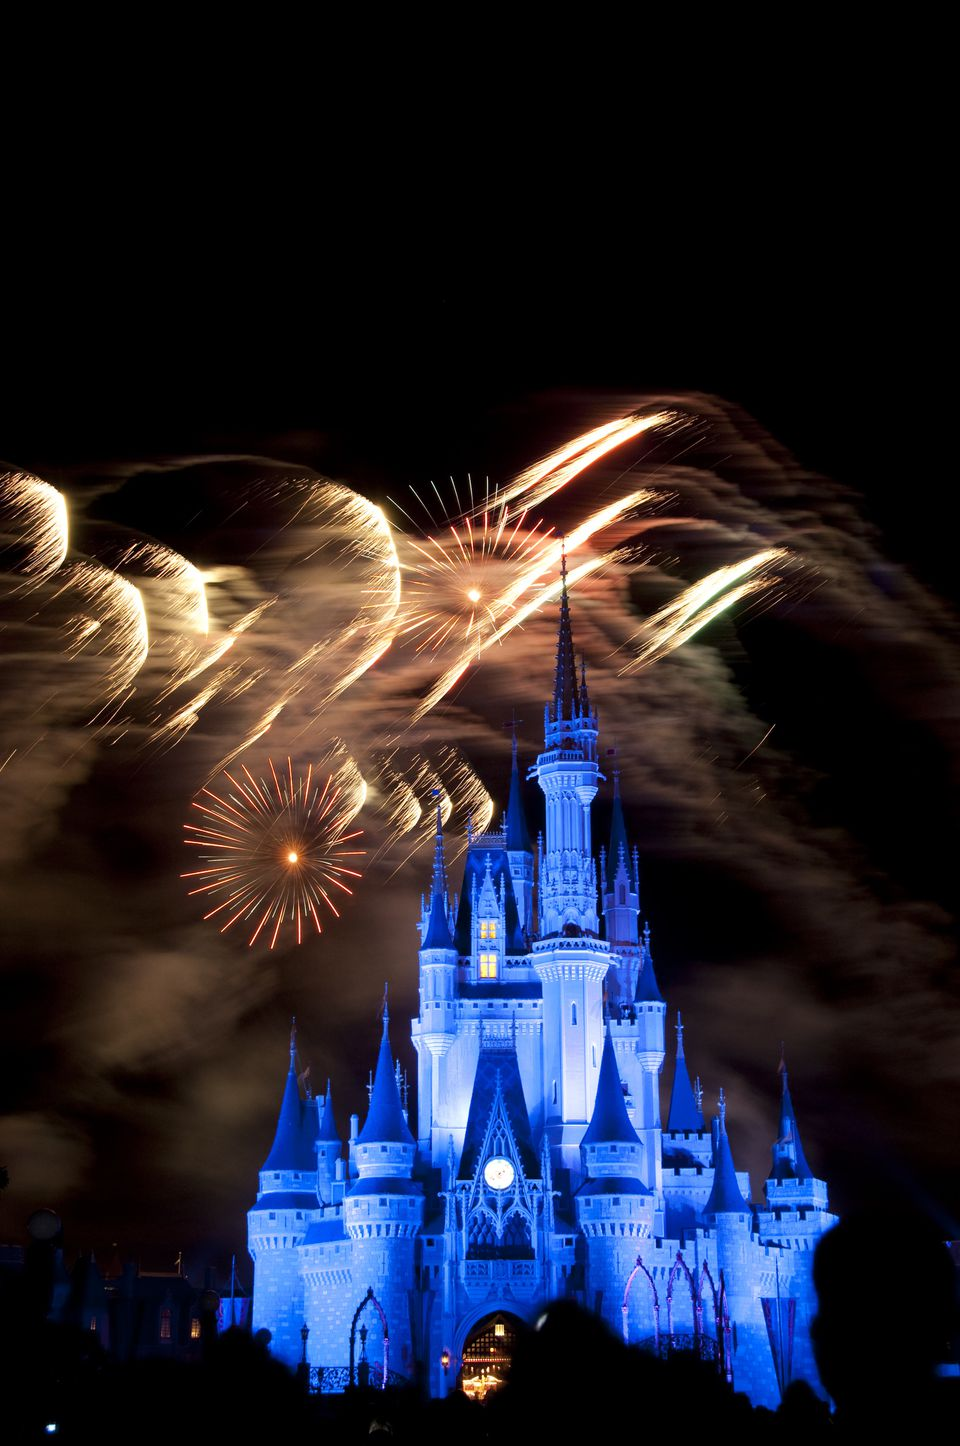 Crowds and Magic Kingdom castle during nightly fireworks, Disney World.